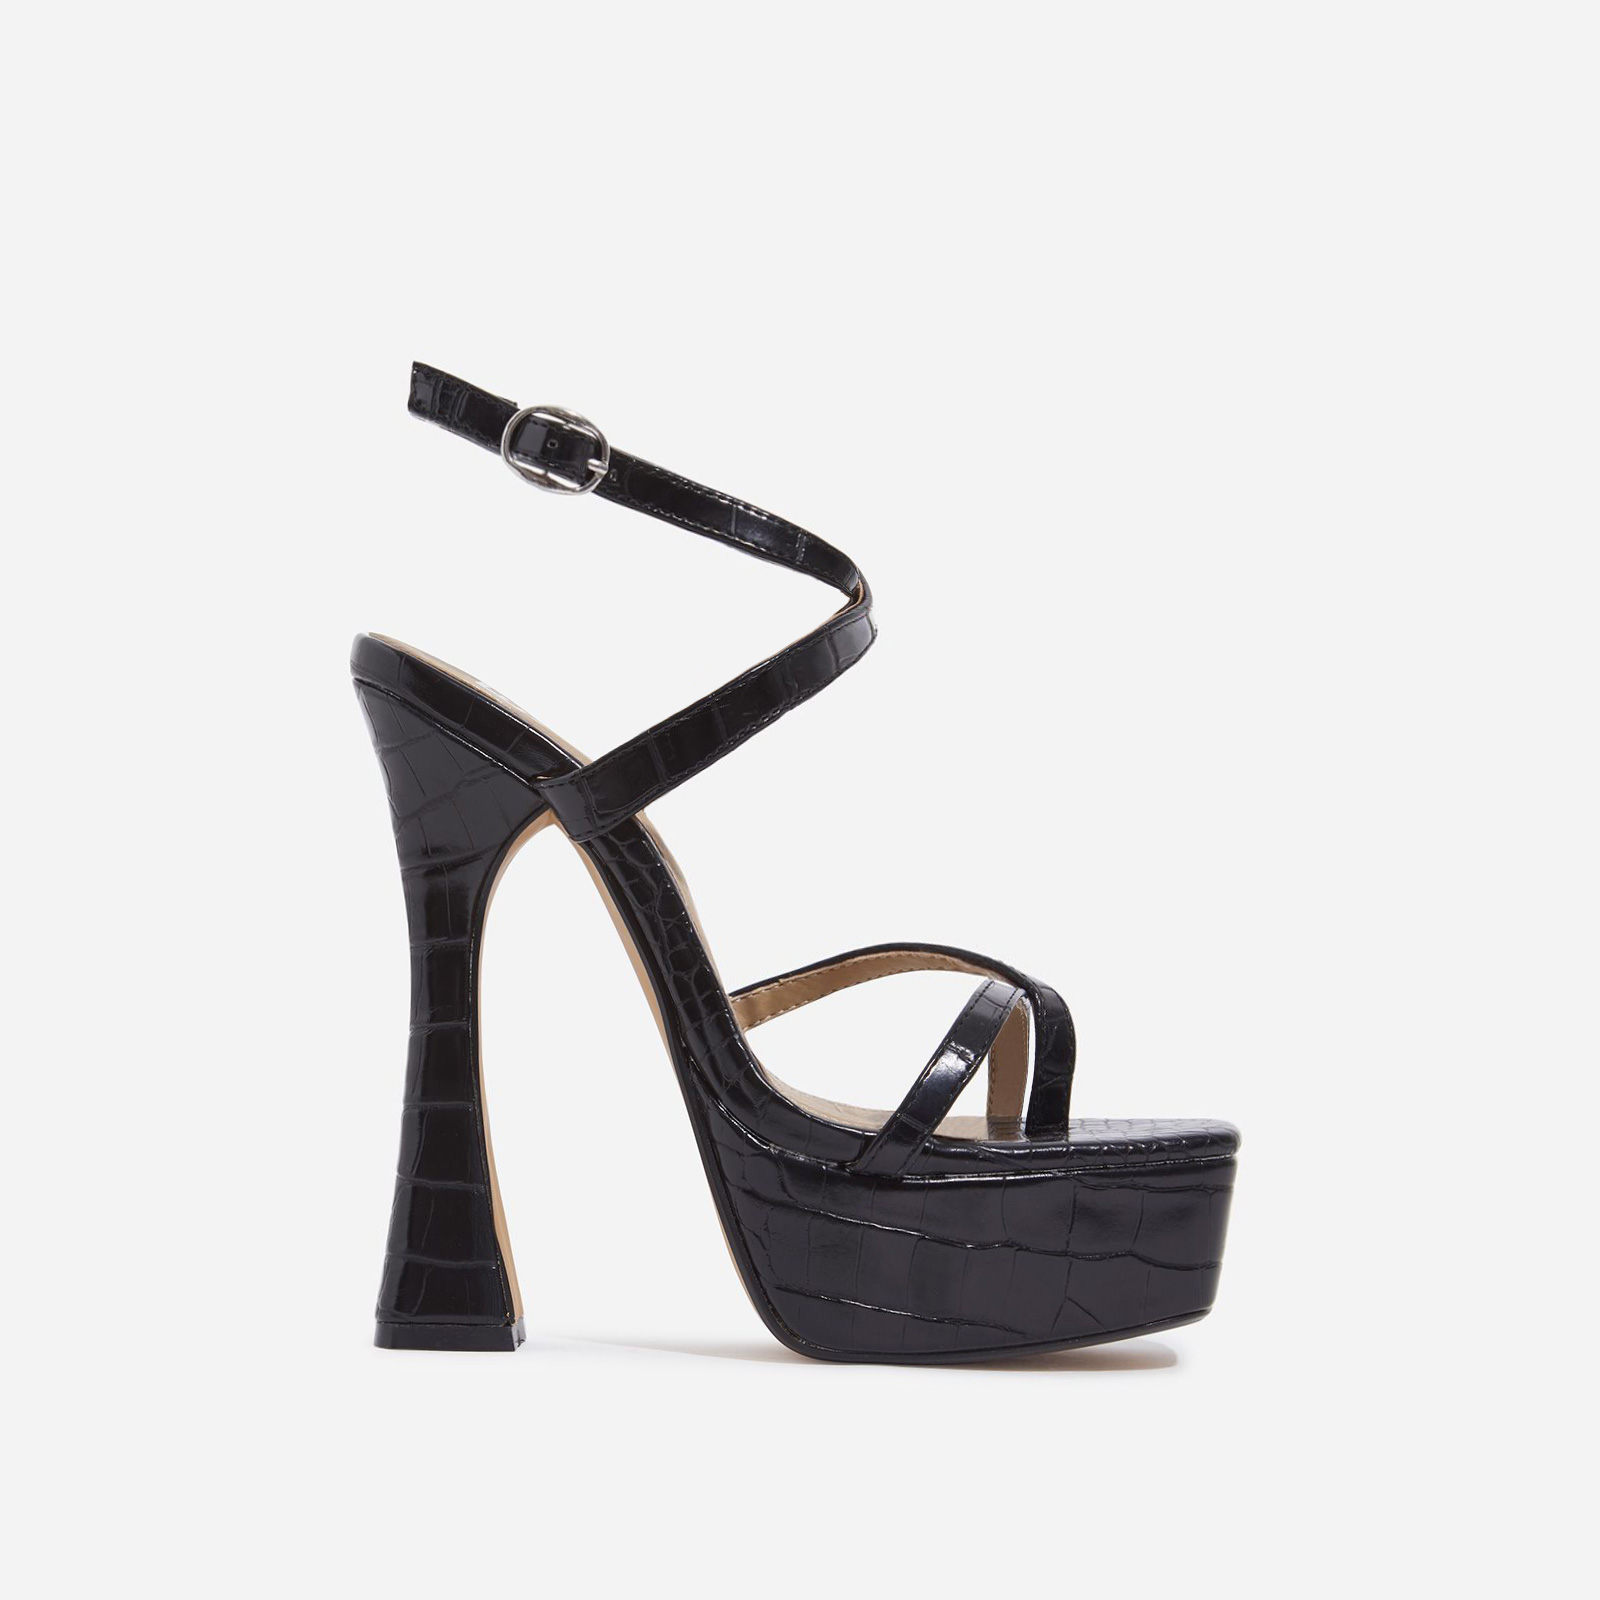 Vox Square Toe Platform Flared Heel In Black Croc Print Faux Leather